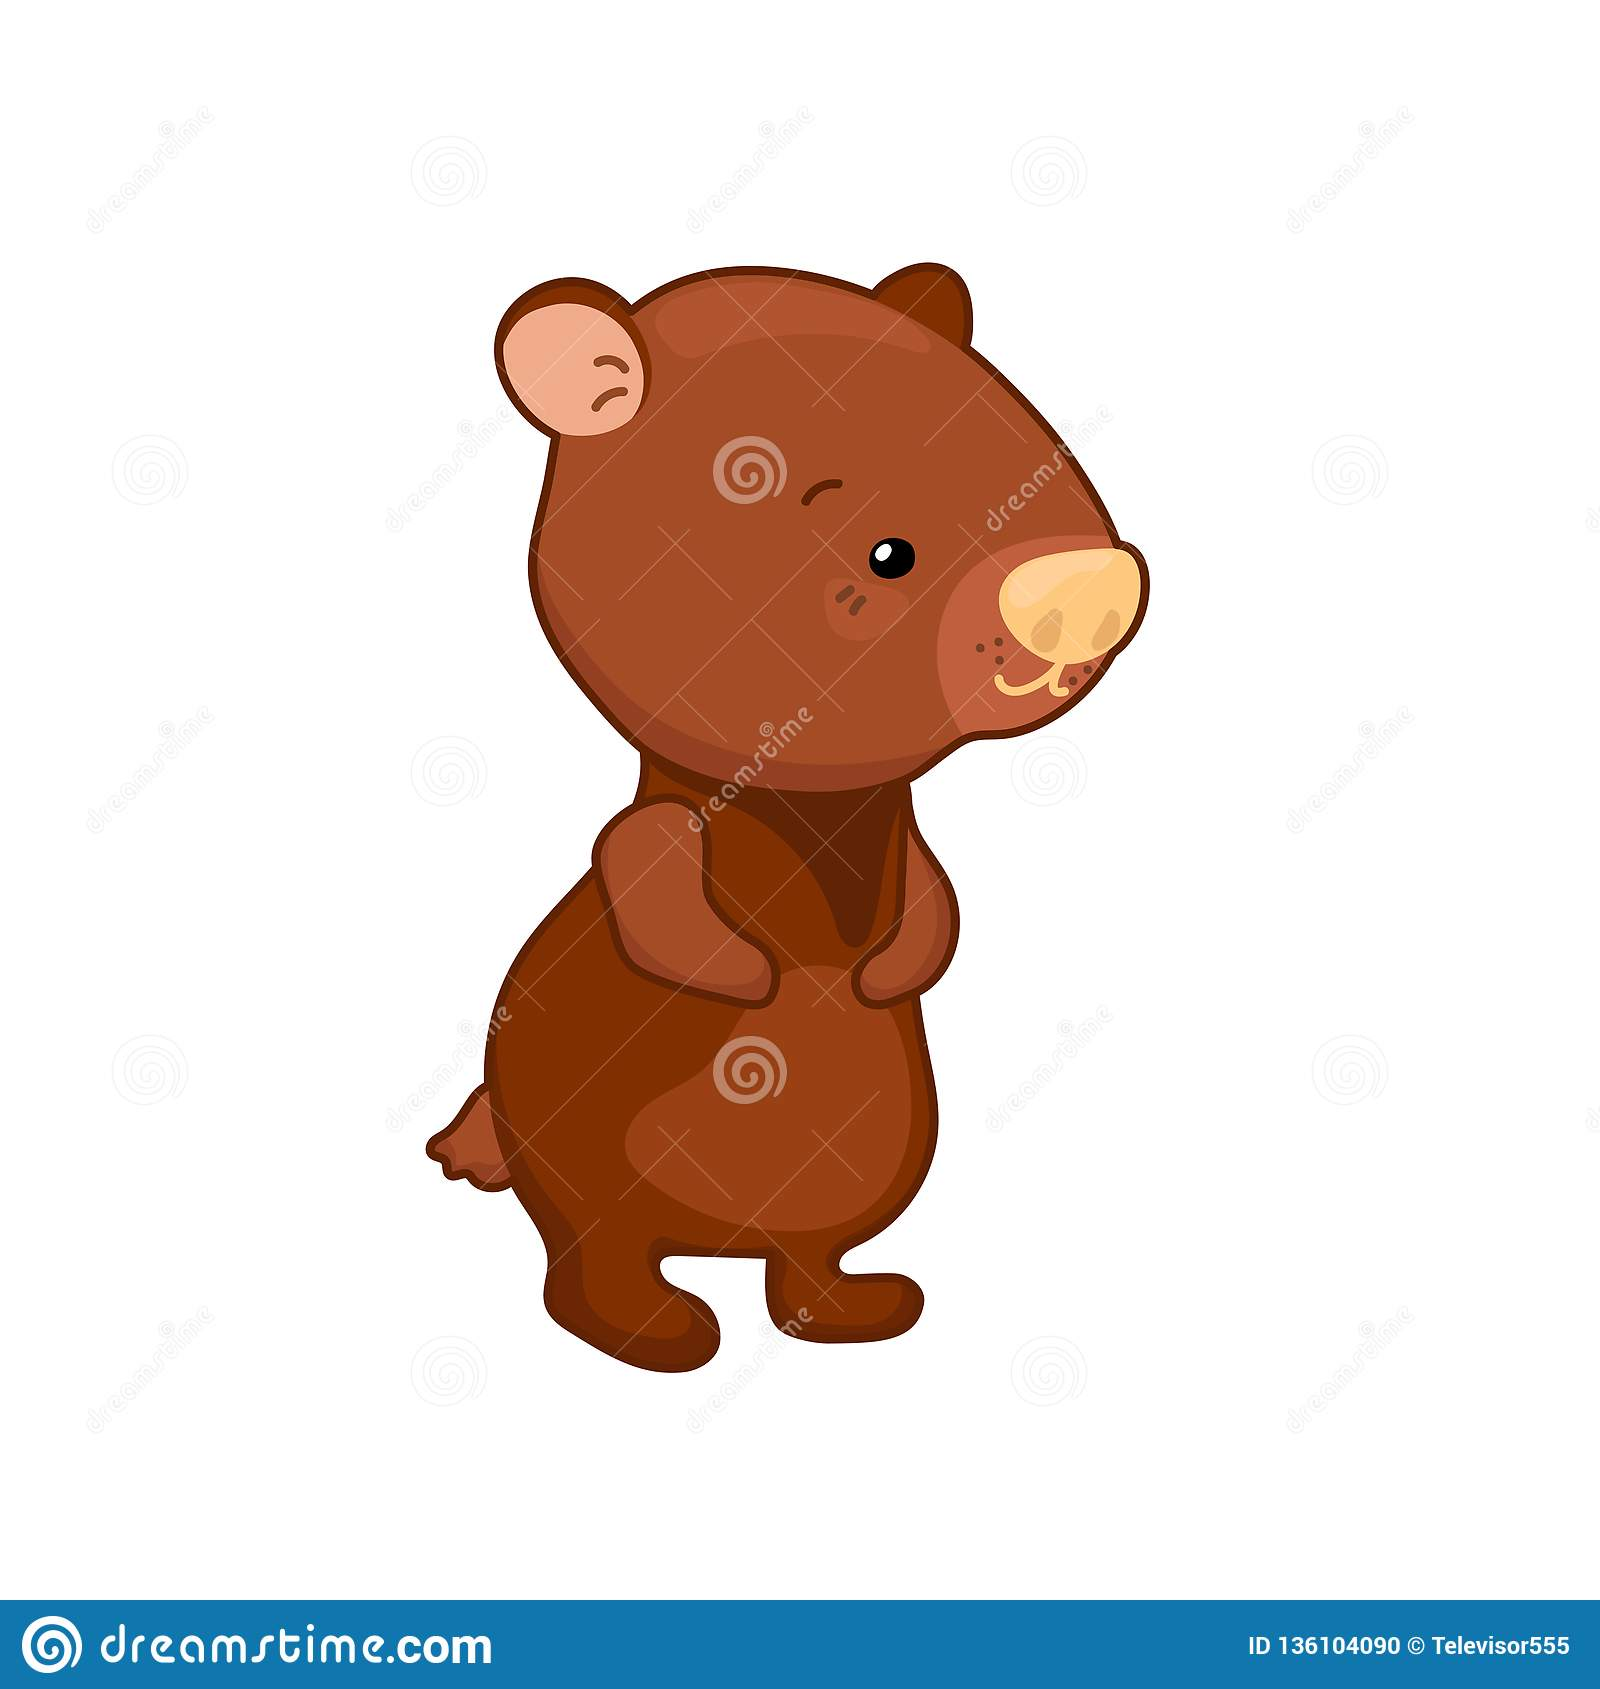 hight resolution of lovely bear illustration on white background woodland animal icon cute brown bear clipart